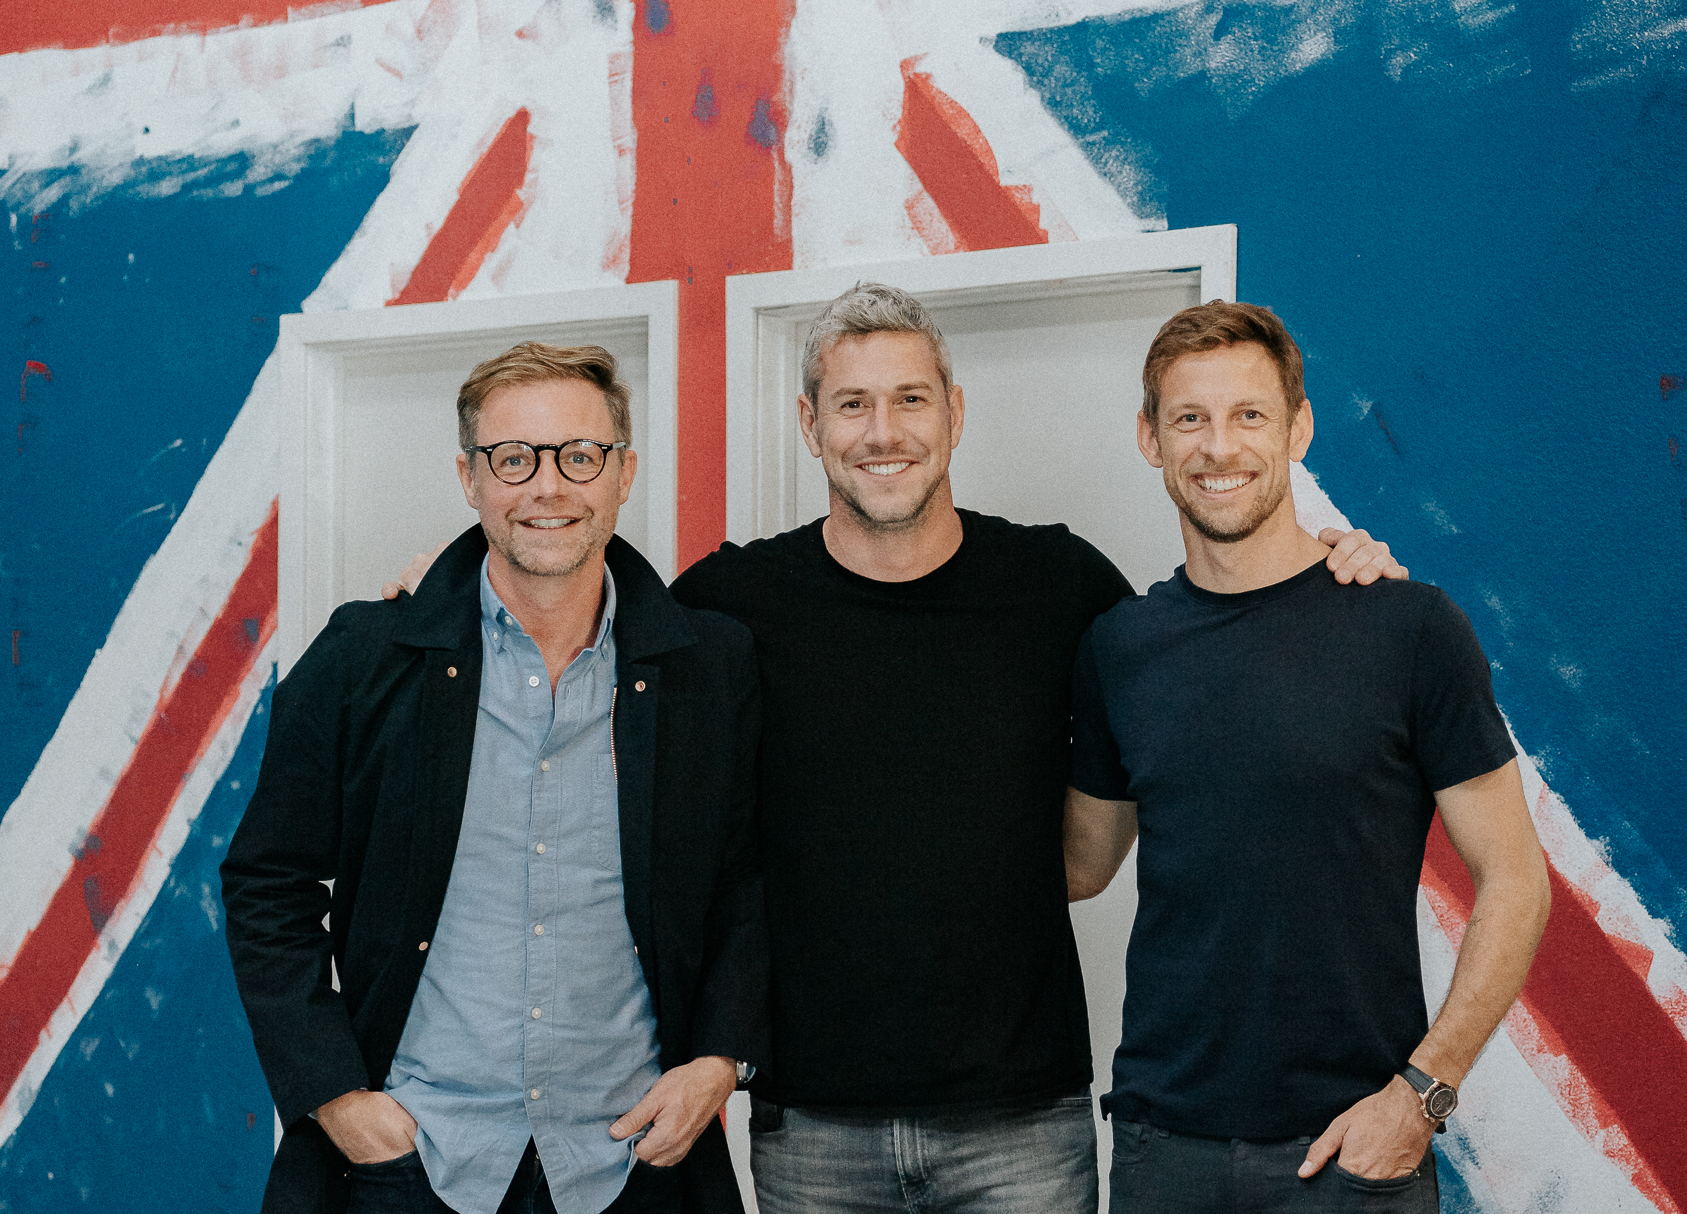 Radford revived: Jenson Button and Ant Anstead behind coachbuilder's return